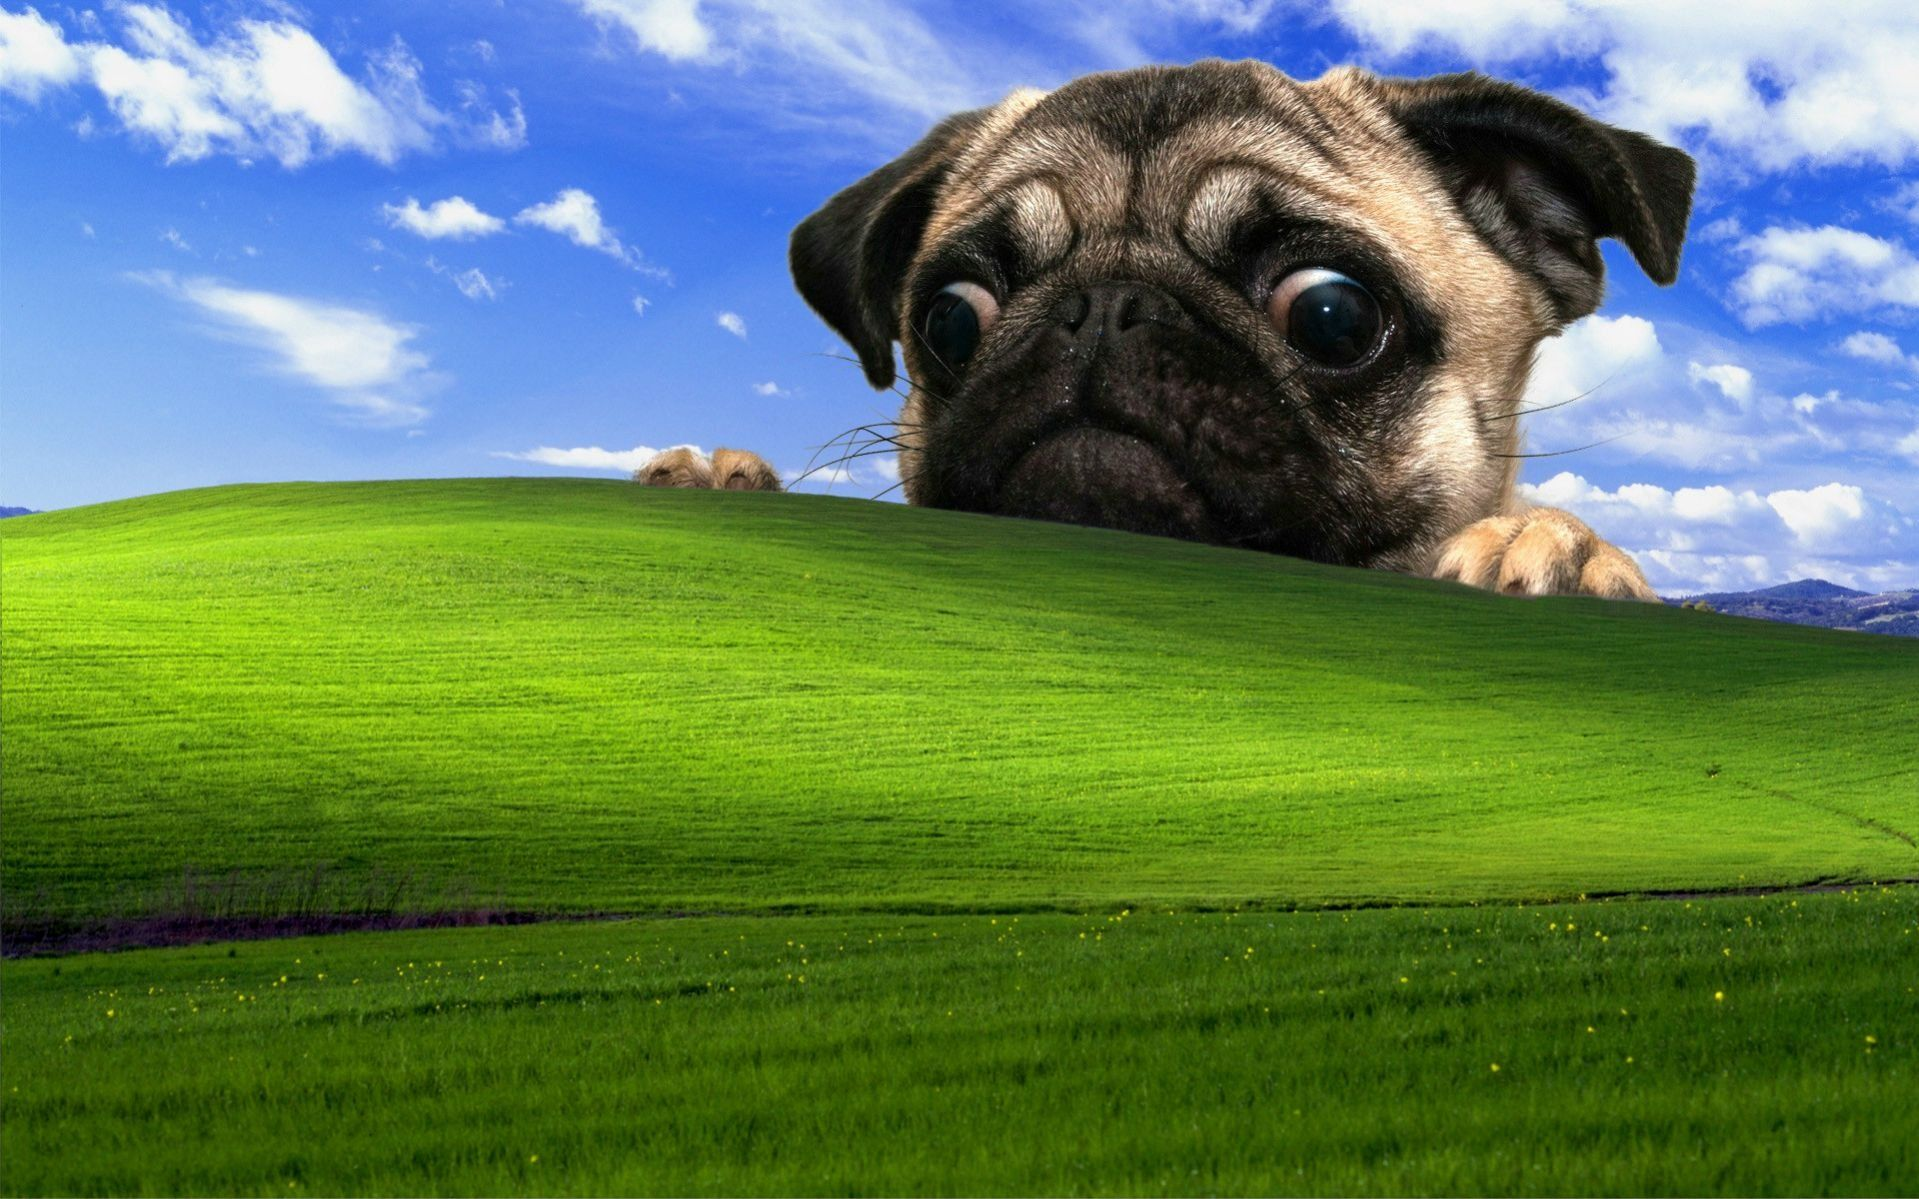 pug desktop backgrounds